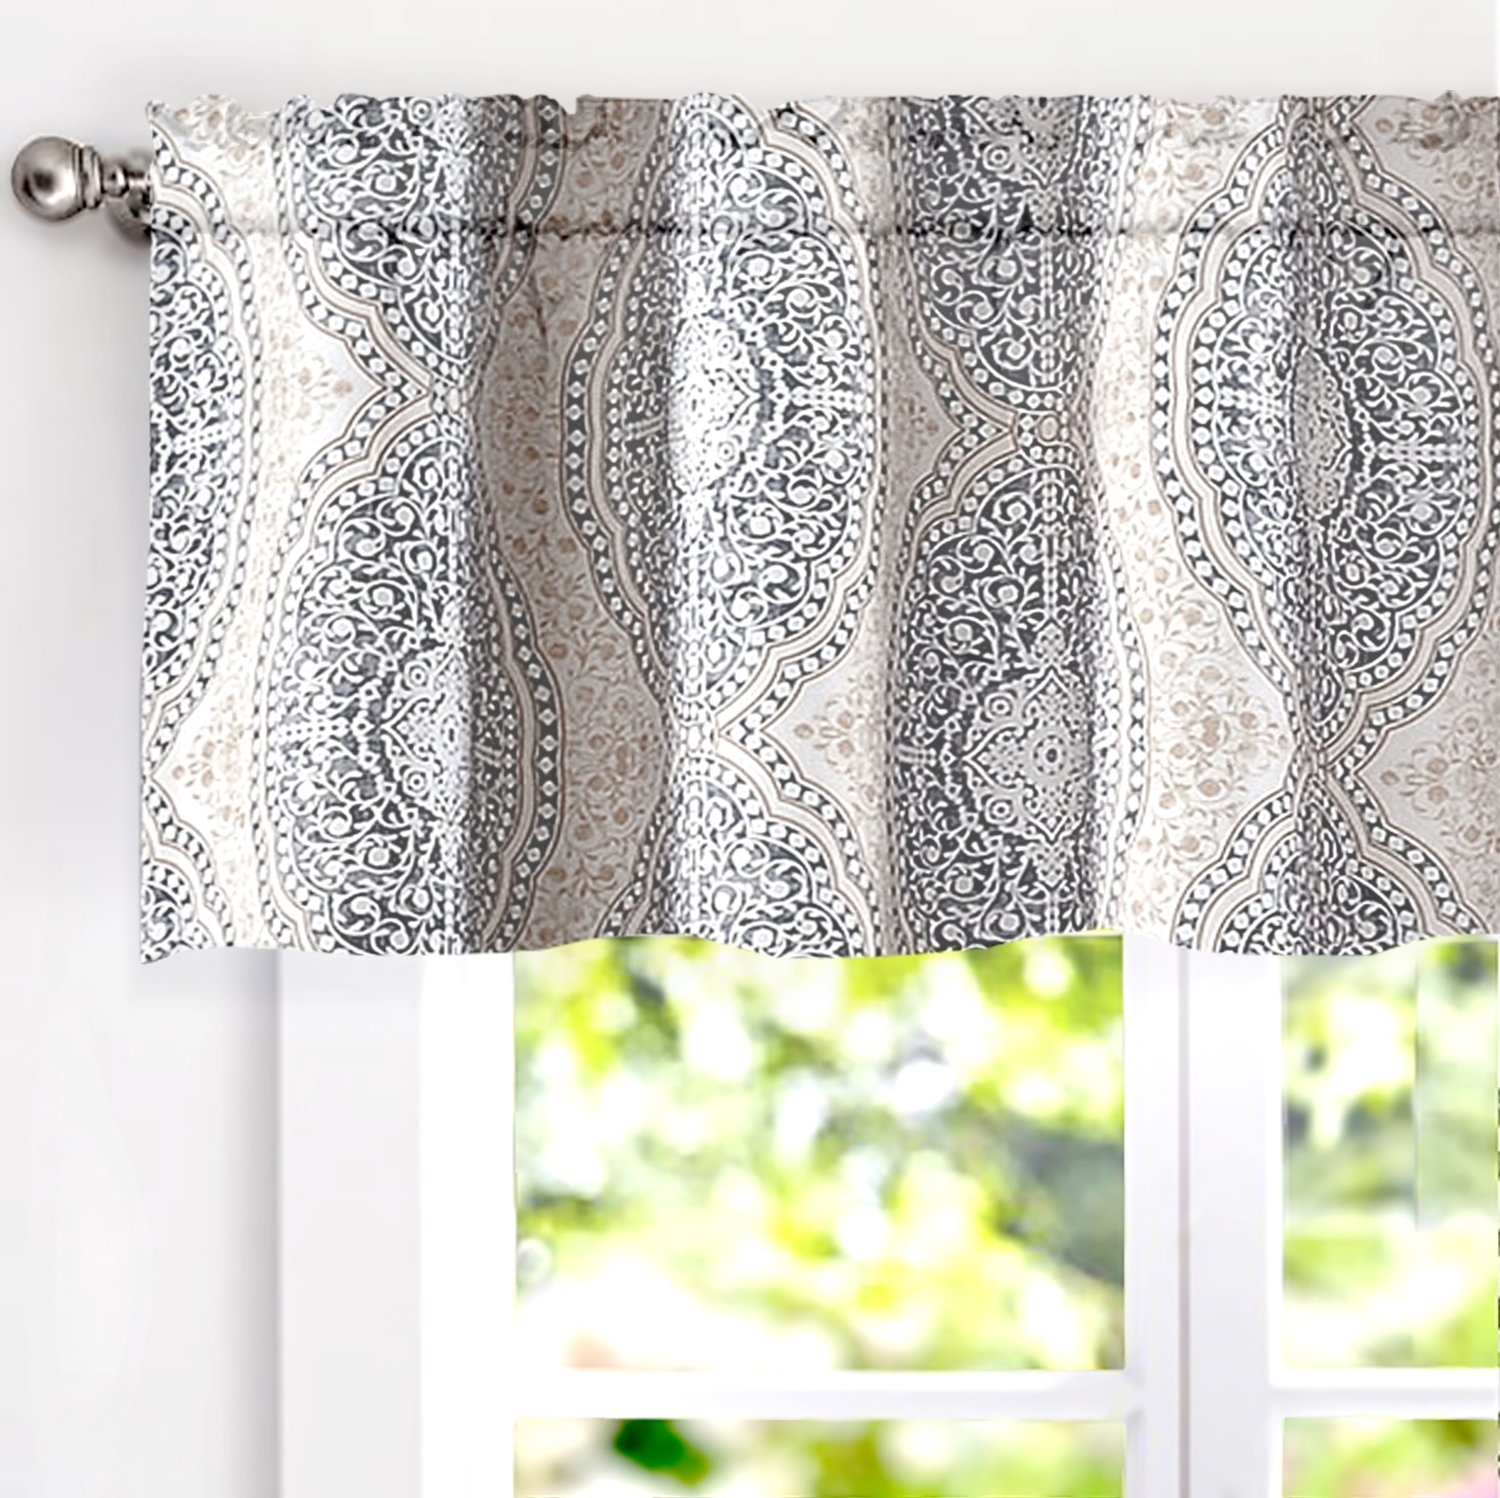 "DriftAway Adrianne Damask/Floral Pattern Window Curtain Valance (52""x18"", Beige/Gray)"